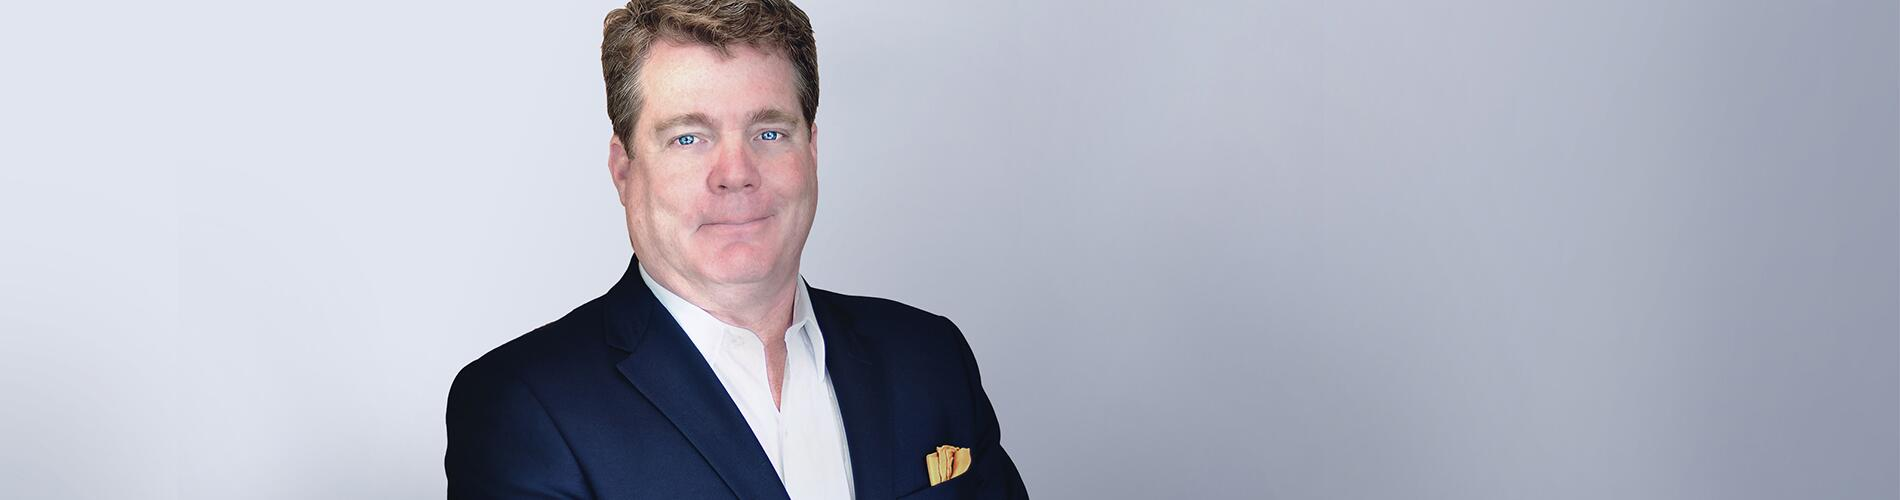 RP3 Agency Adds Nick Teare as Executive Director of Client Services